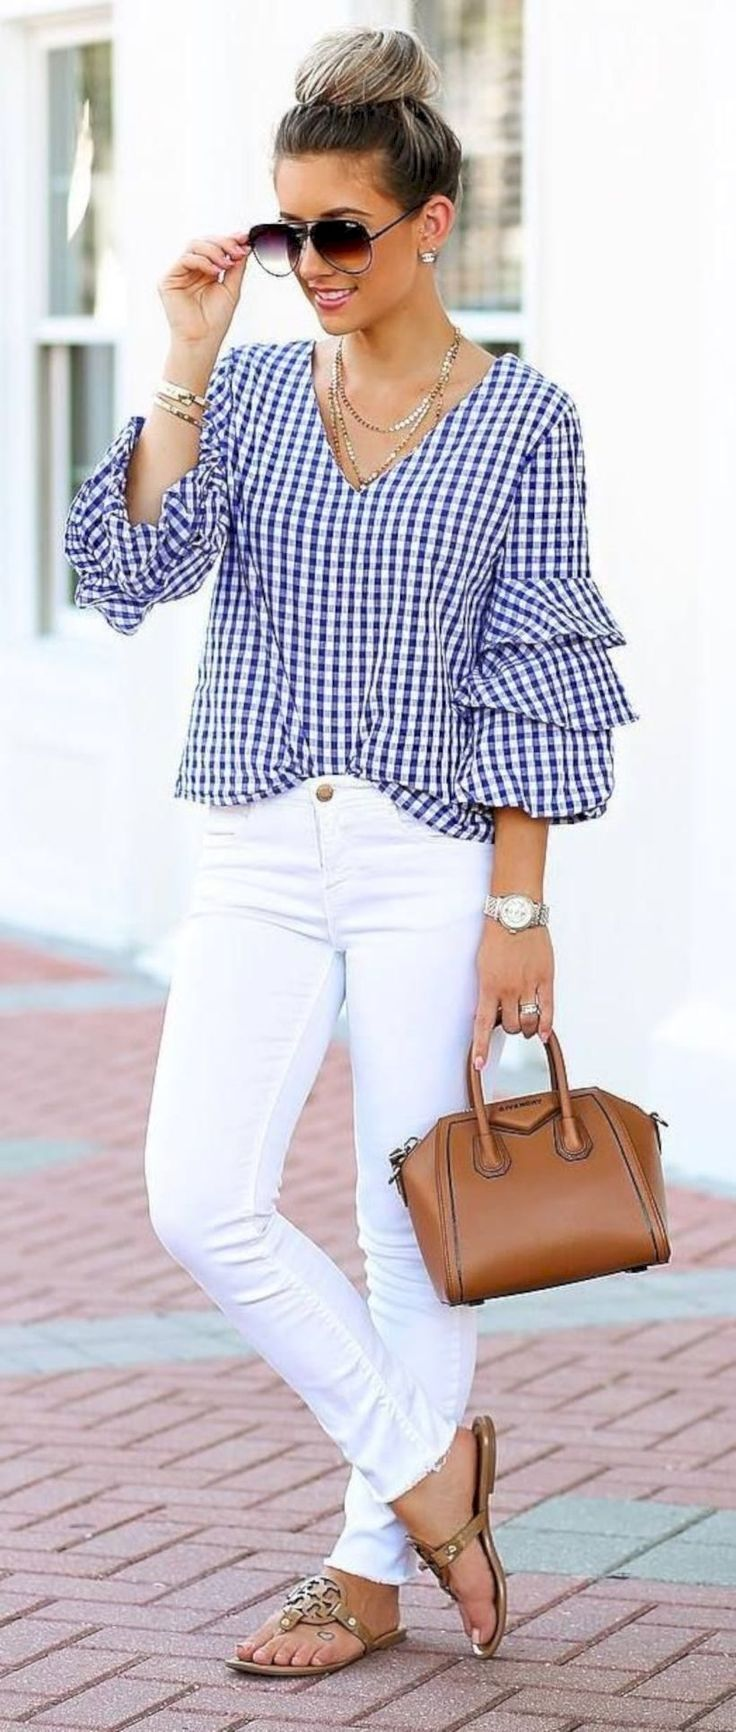 2fcf1b03c59 39 Summer Outfit Ideas In 2018 You Should Already Own